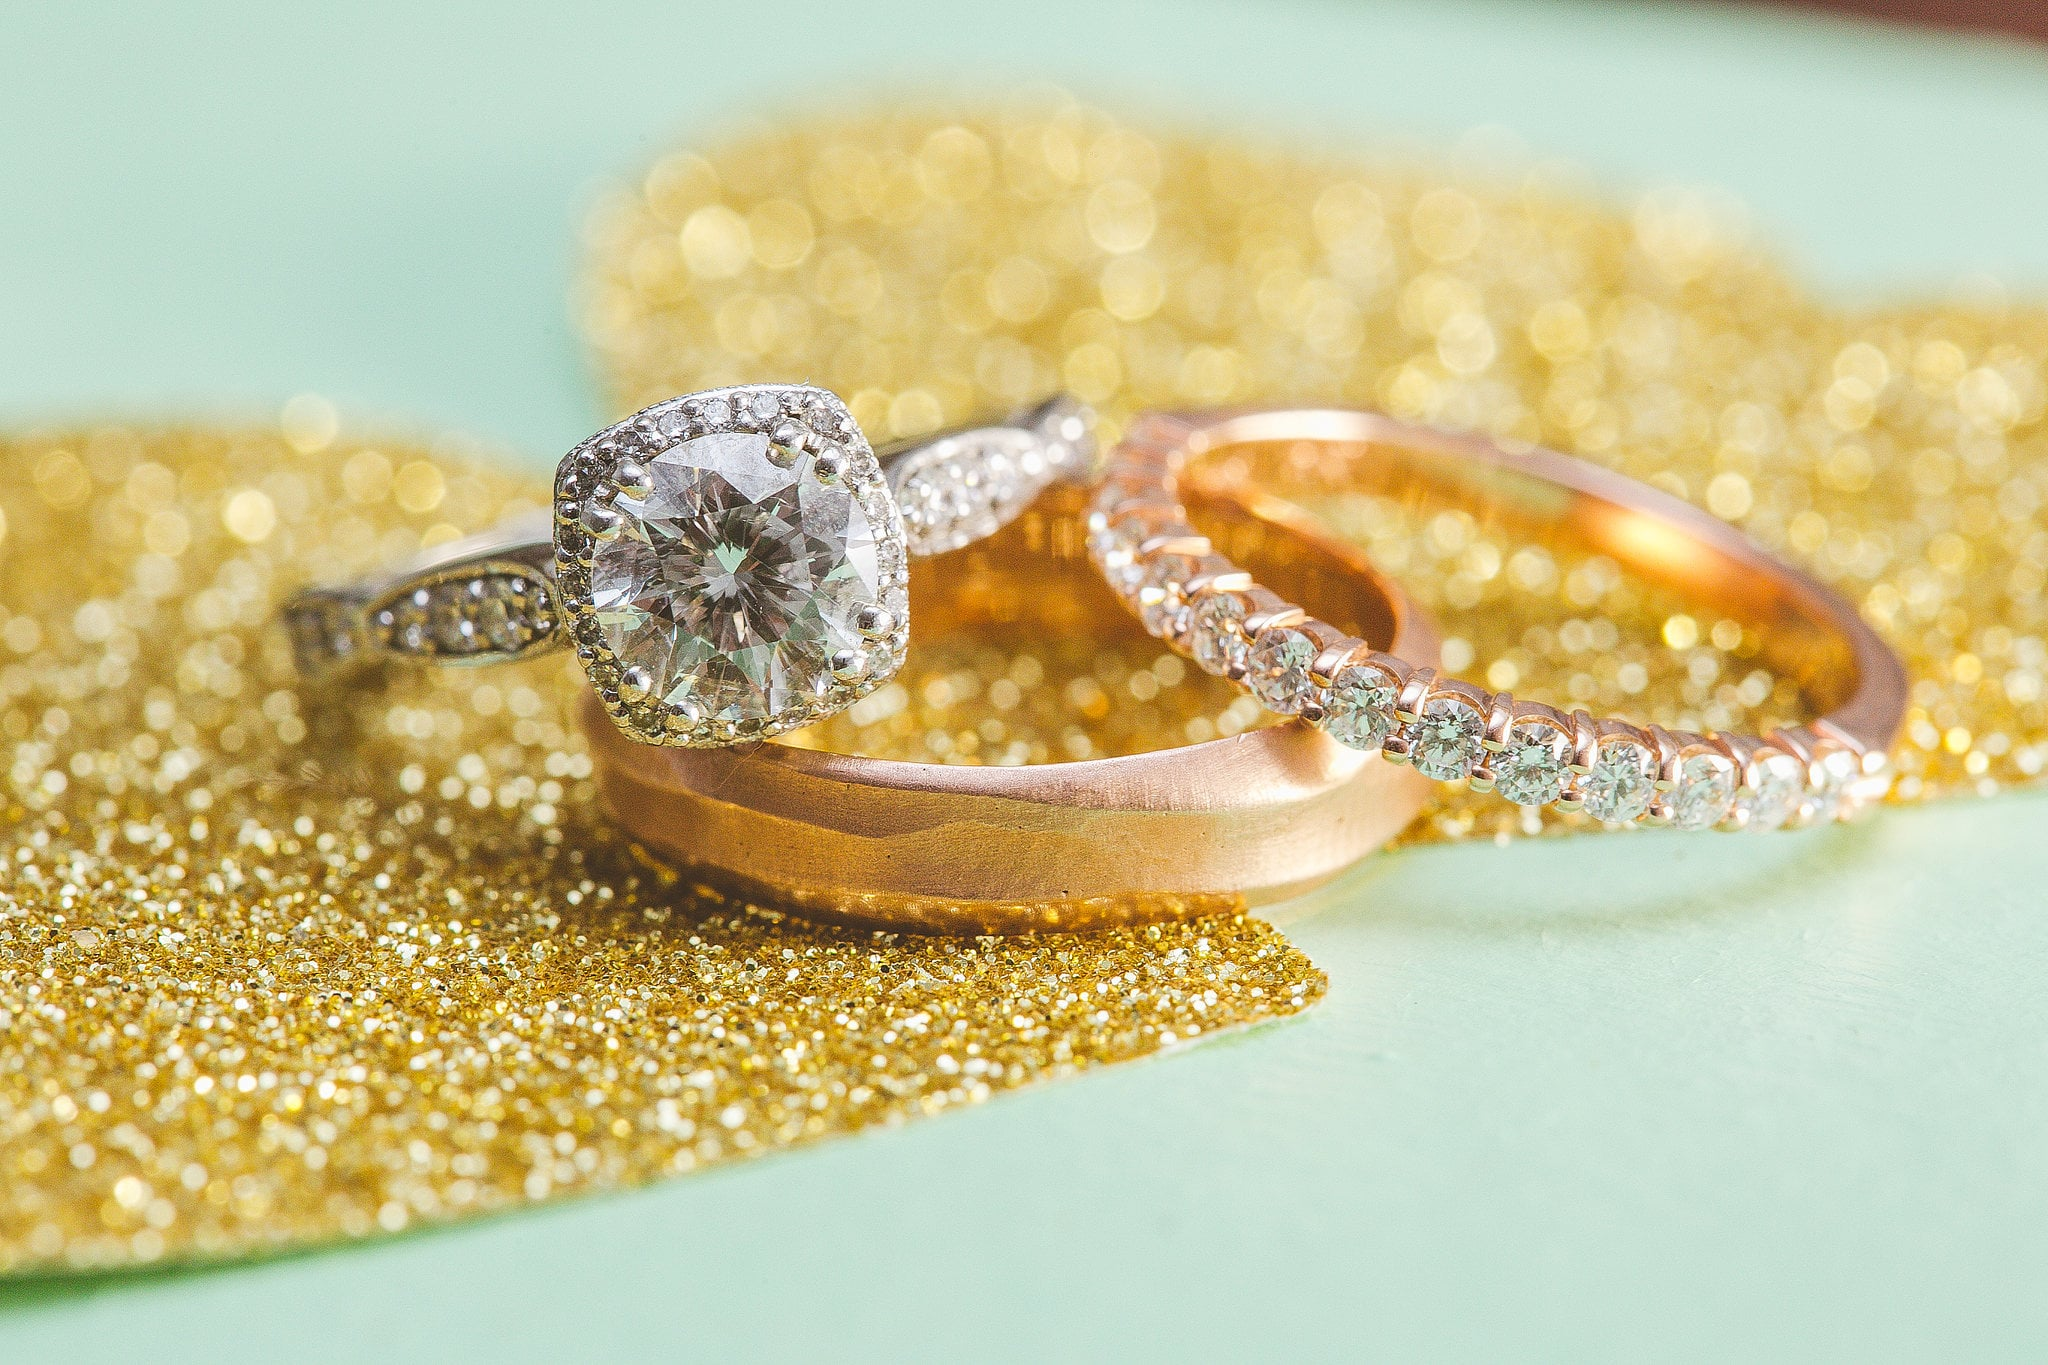 Where to Sell a Diamond Ring | POPSUGAR Smart Living